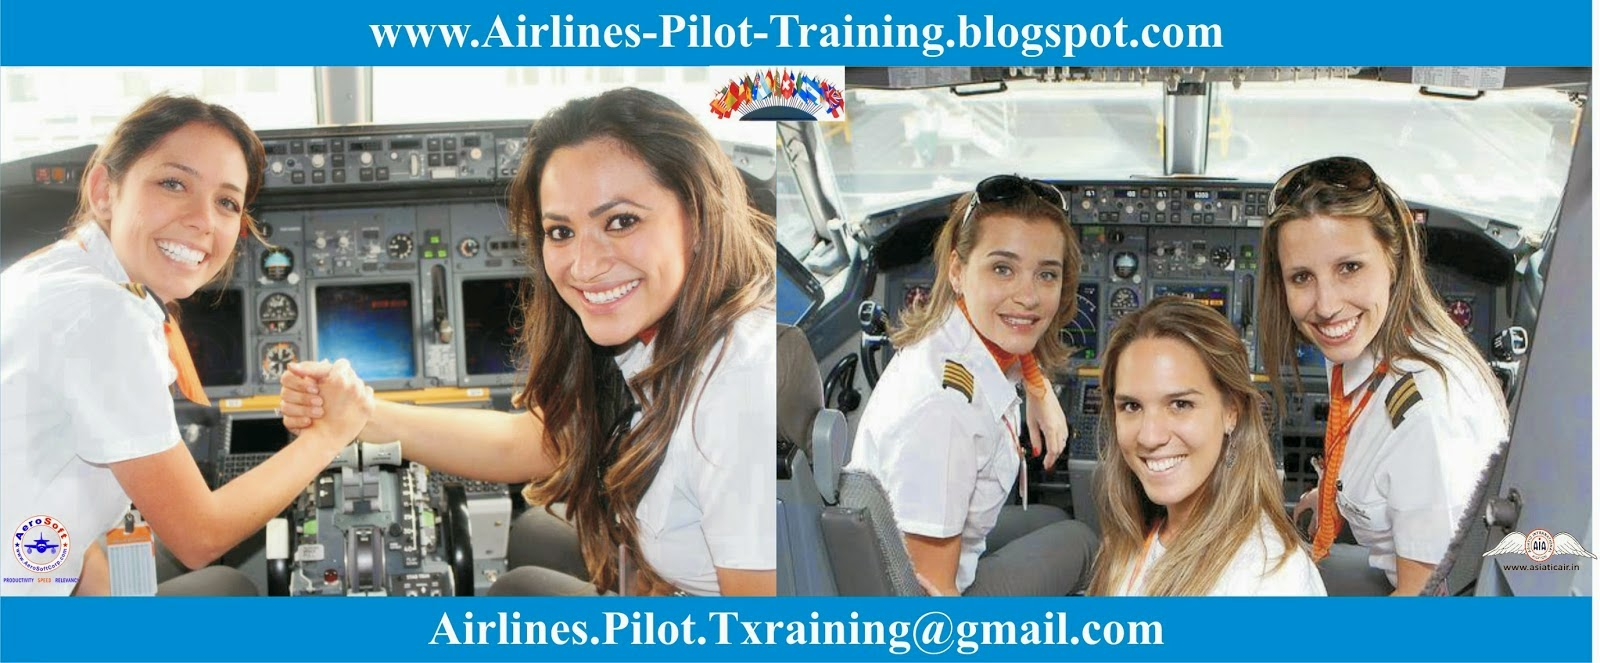 International Airlines Pilot Training